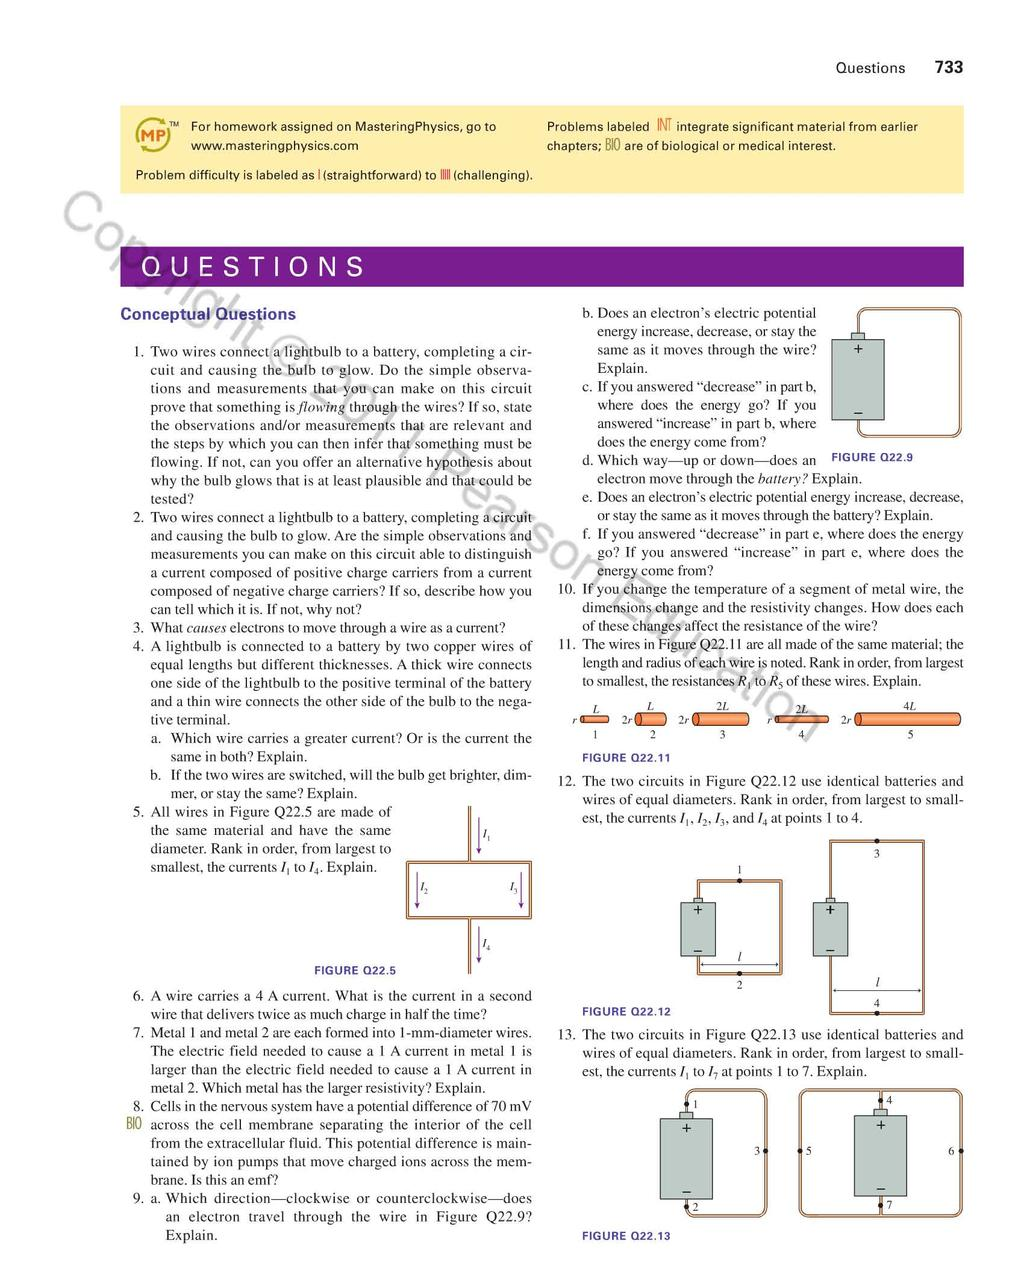 Questions Tmptm I Conceptual Pdf Wiring Diagrams And Schematics With Graded Quiz Troubleshooting Heat 733 For Homewok Assiged On Masteringphysics Go